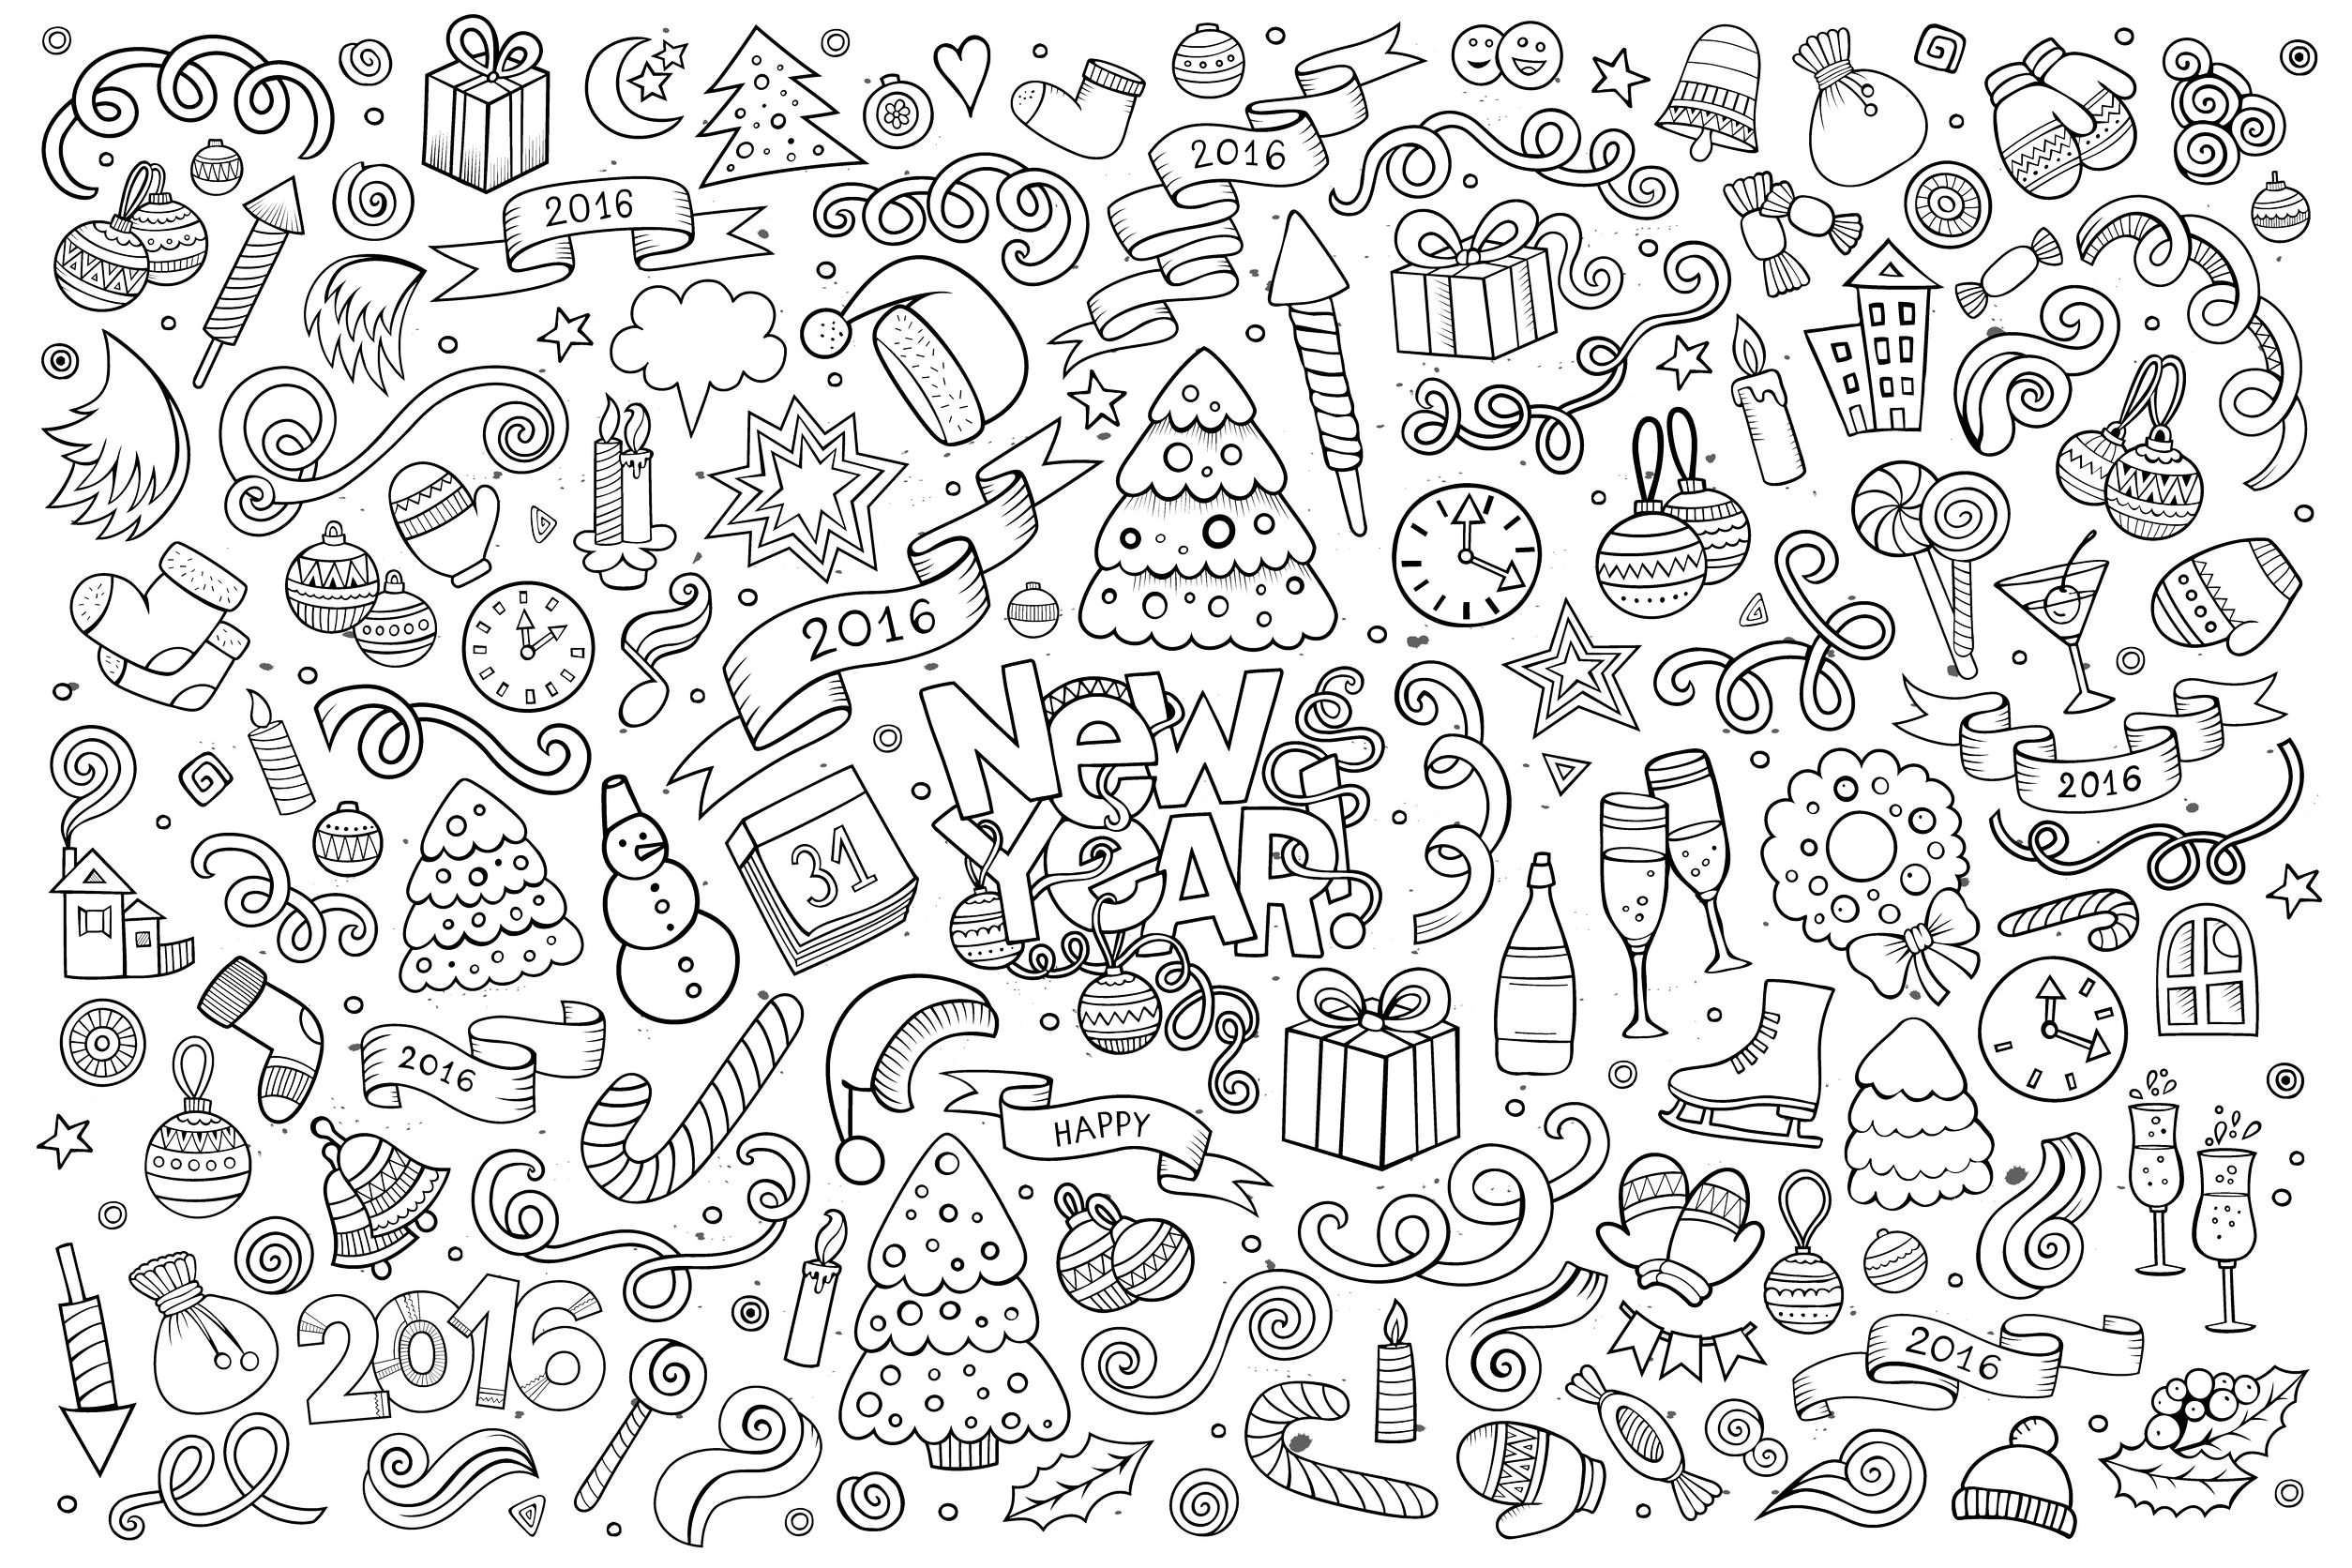 Adult Coloring Pages with Quotes - Doodle Happy New Year 2016 by Balabolka